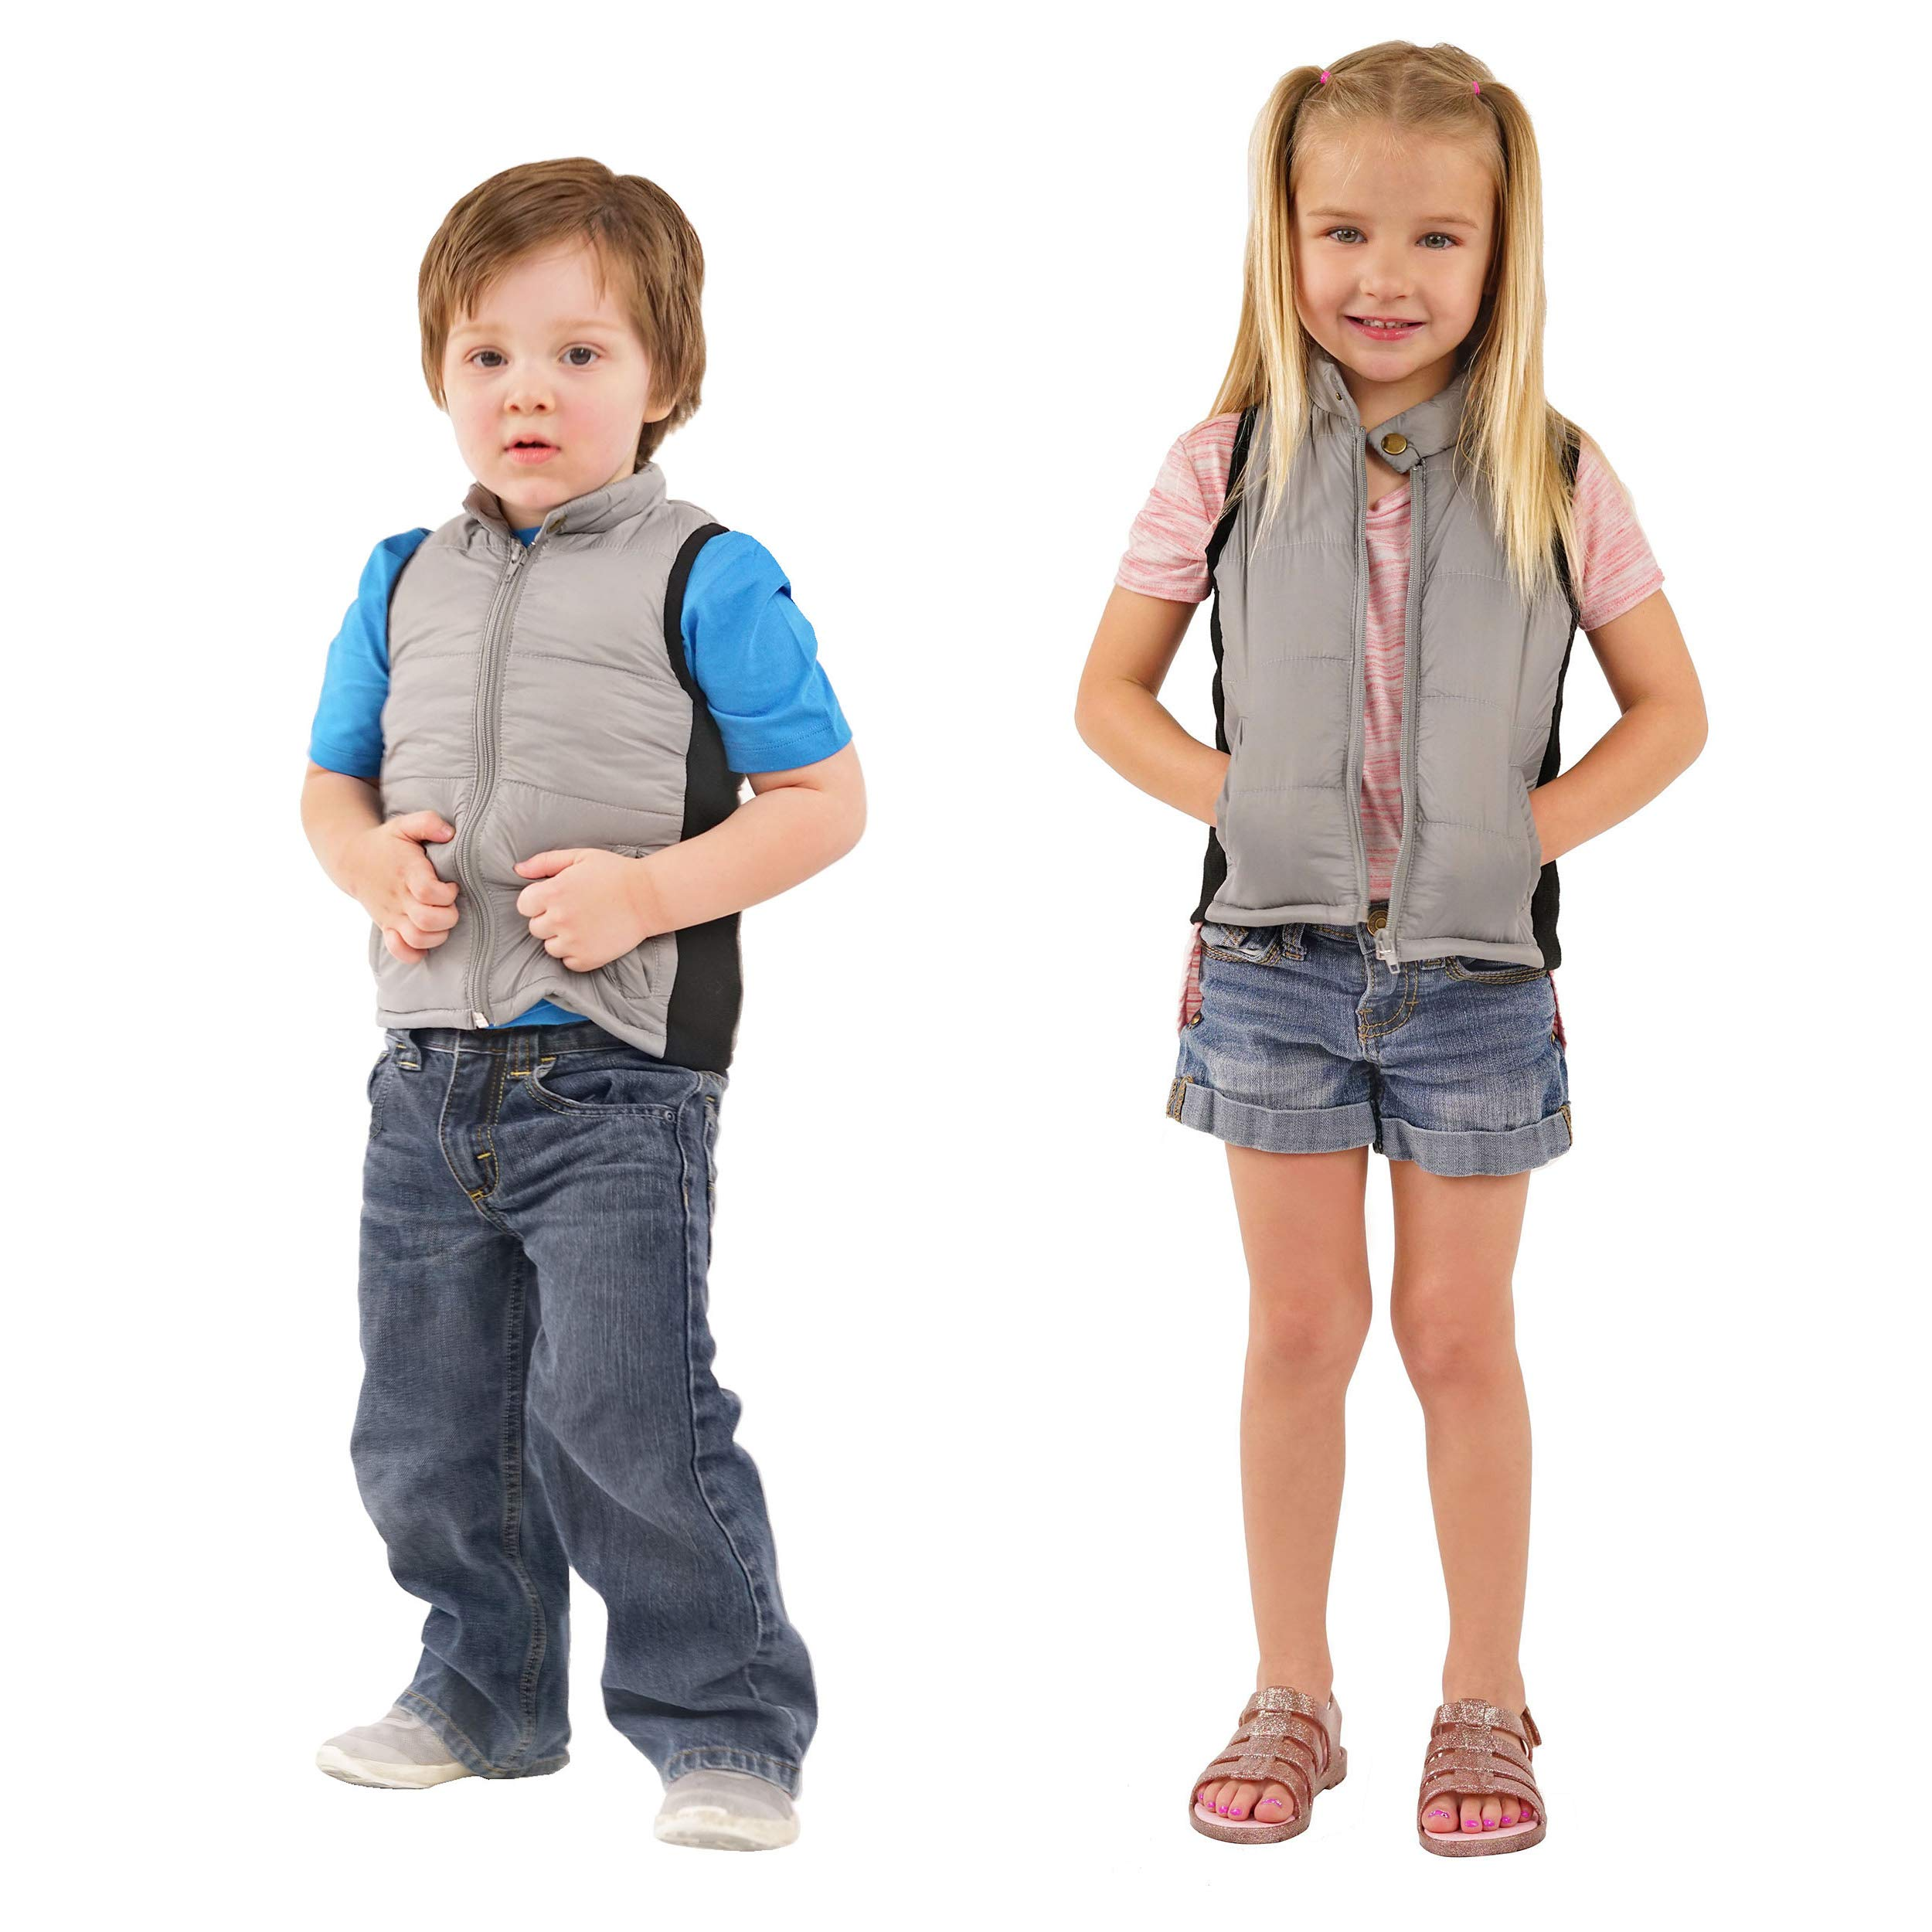 ZooVaa Weighted Vest for Kids - Children's Youth Nylon Sleek Vest w/Removable Weights - Small -16-CCT-201SG